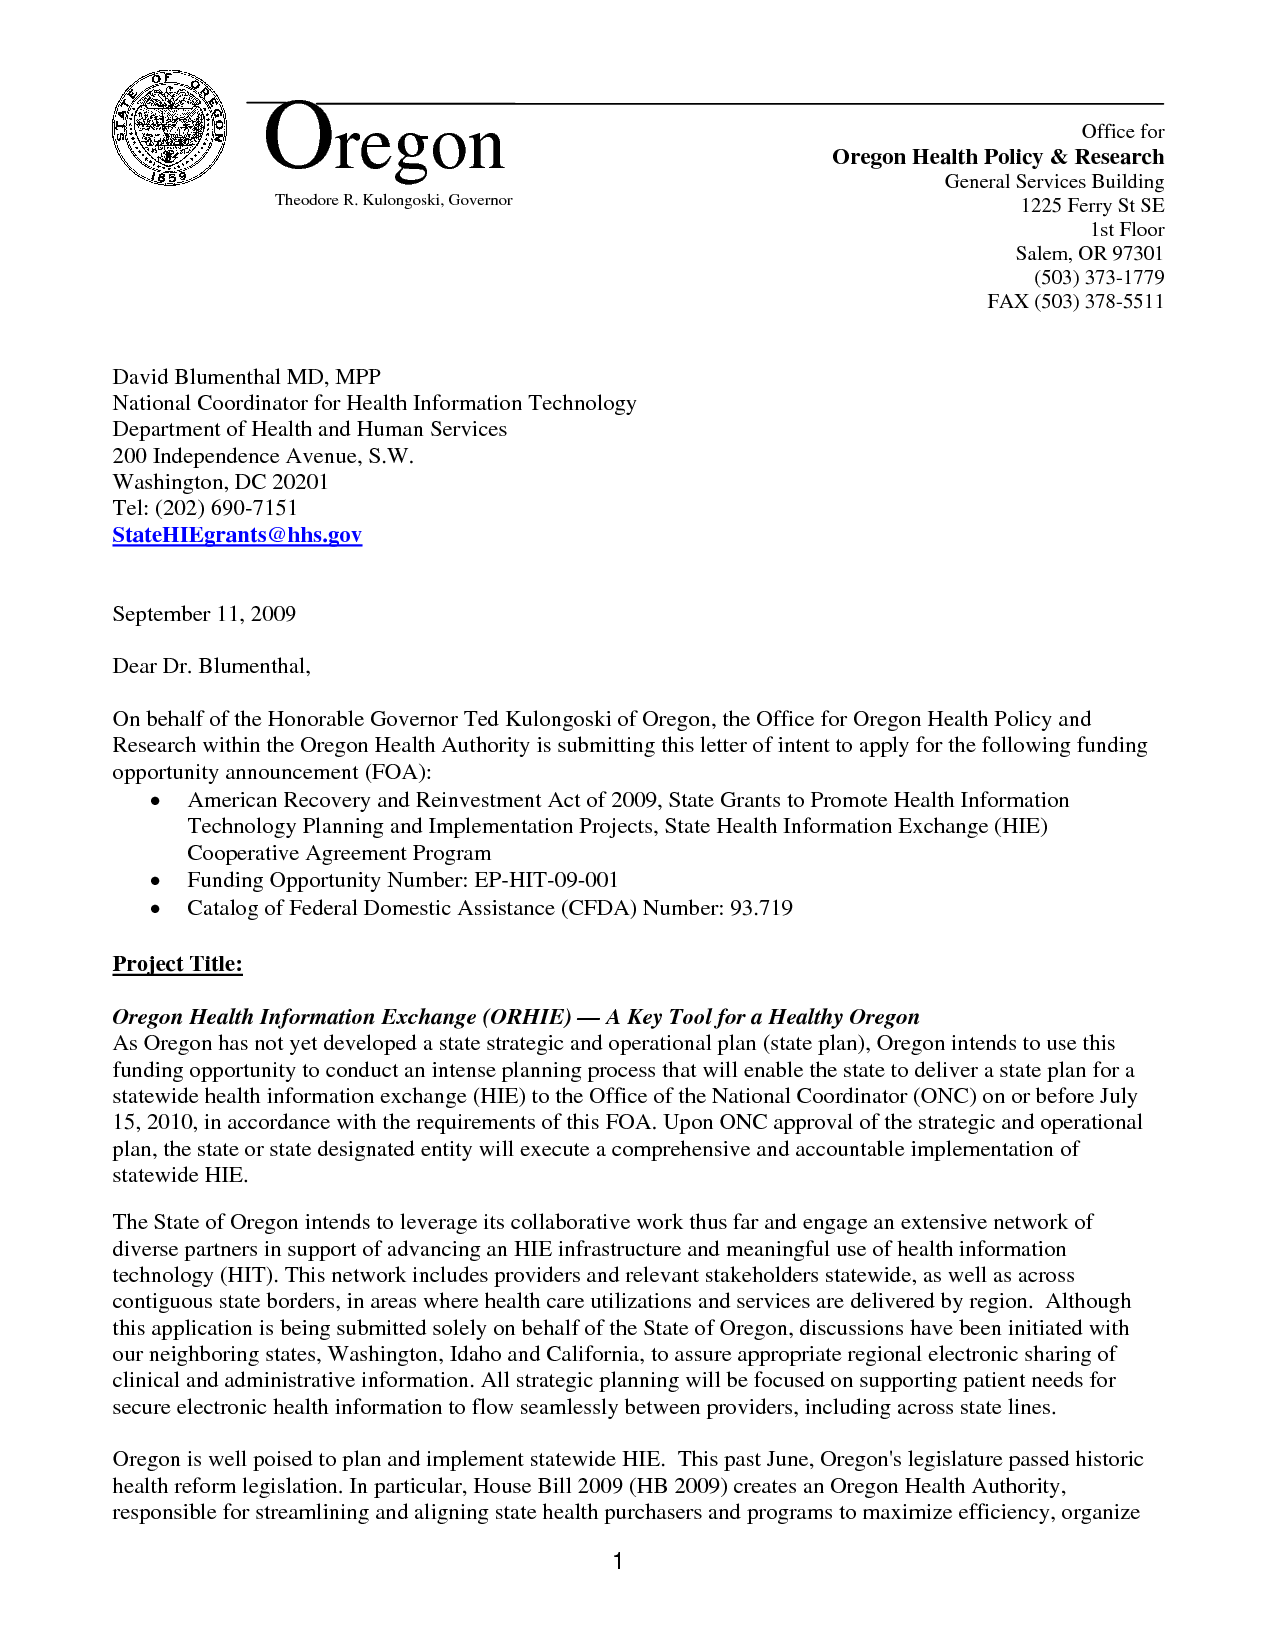 Sample Business Partnership Letter Example Requesting  Home